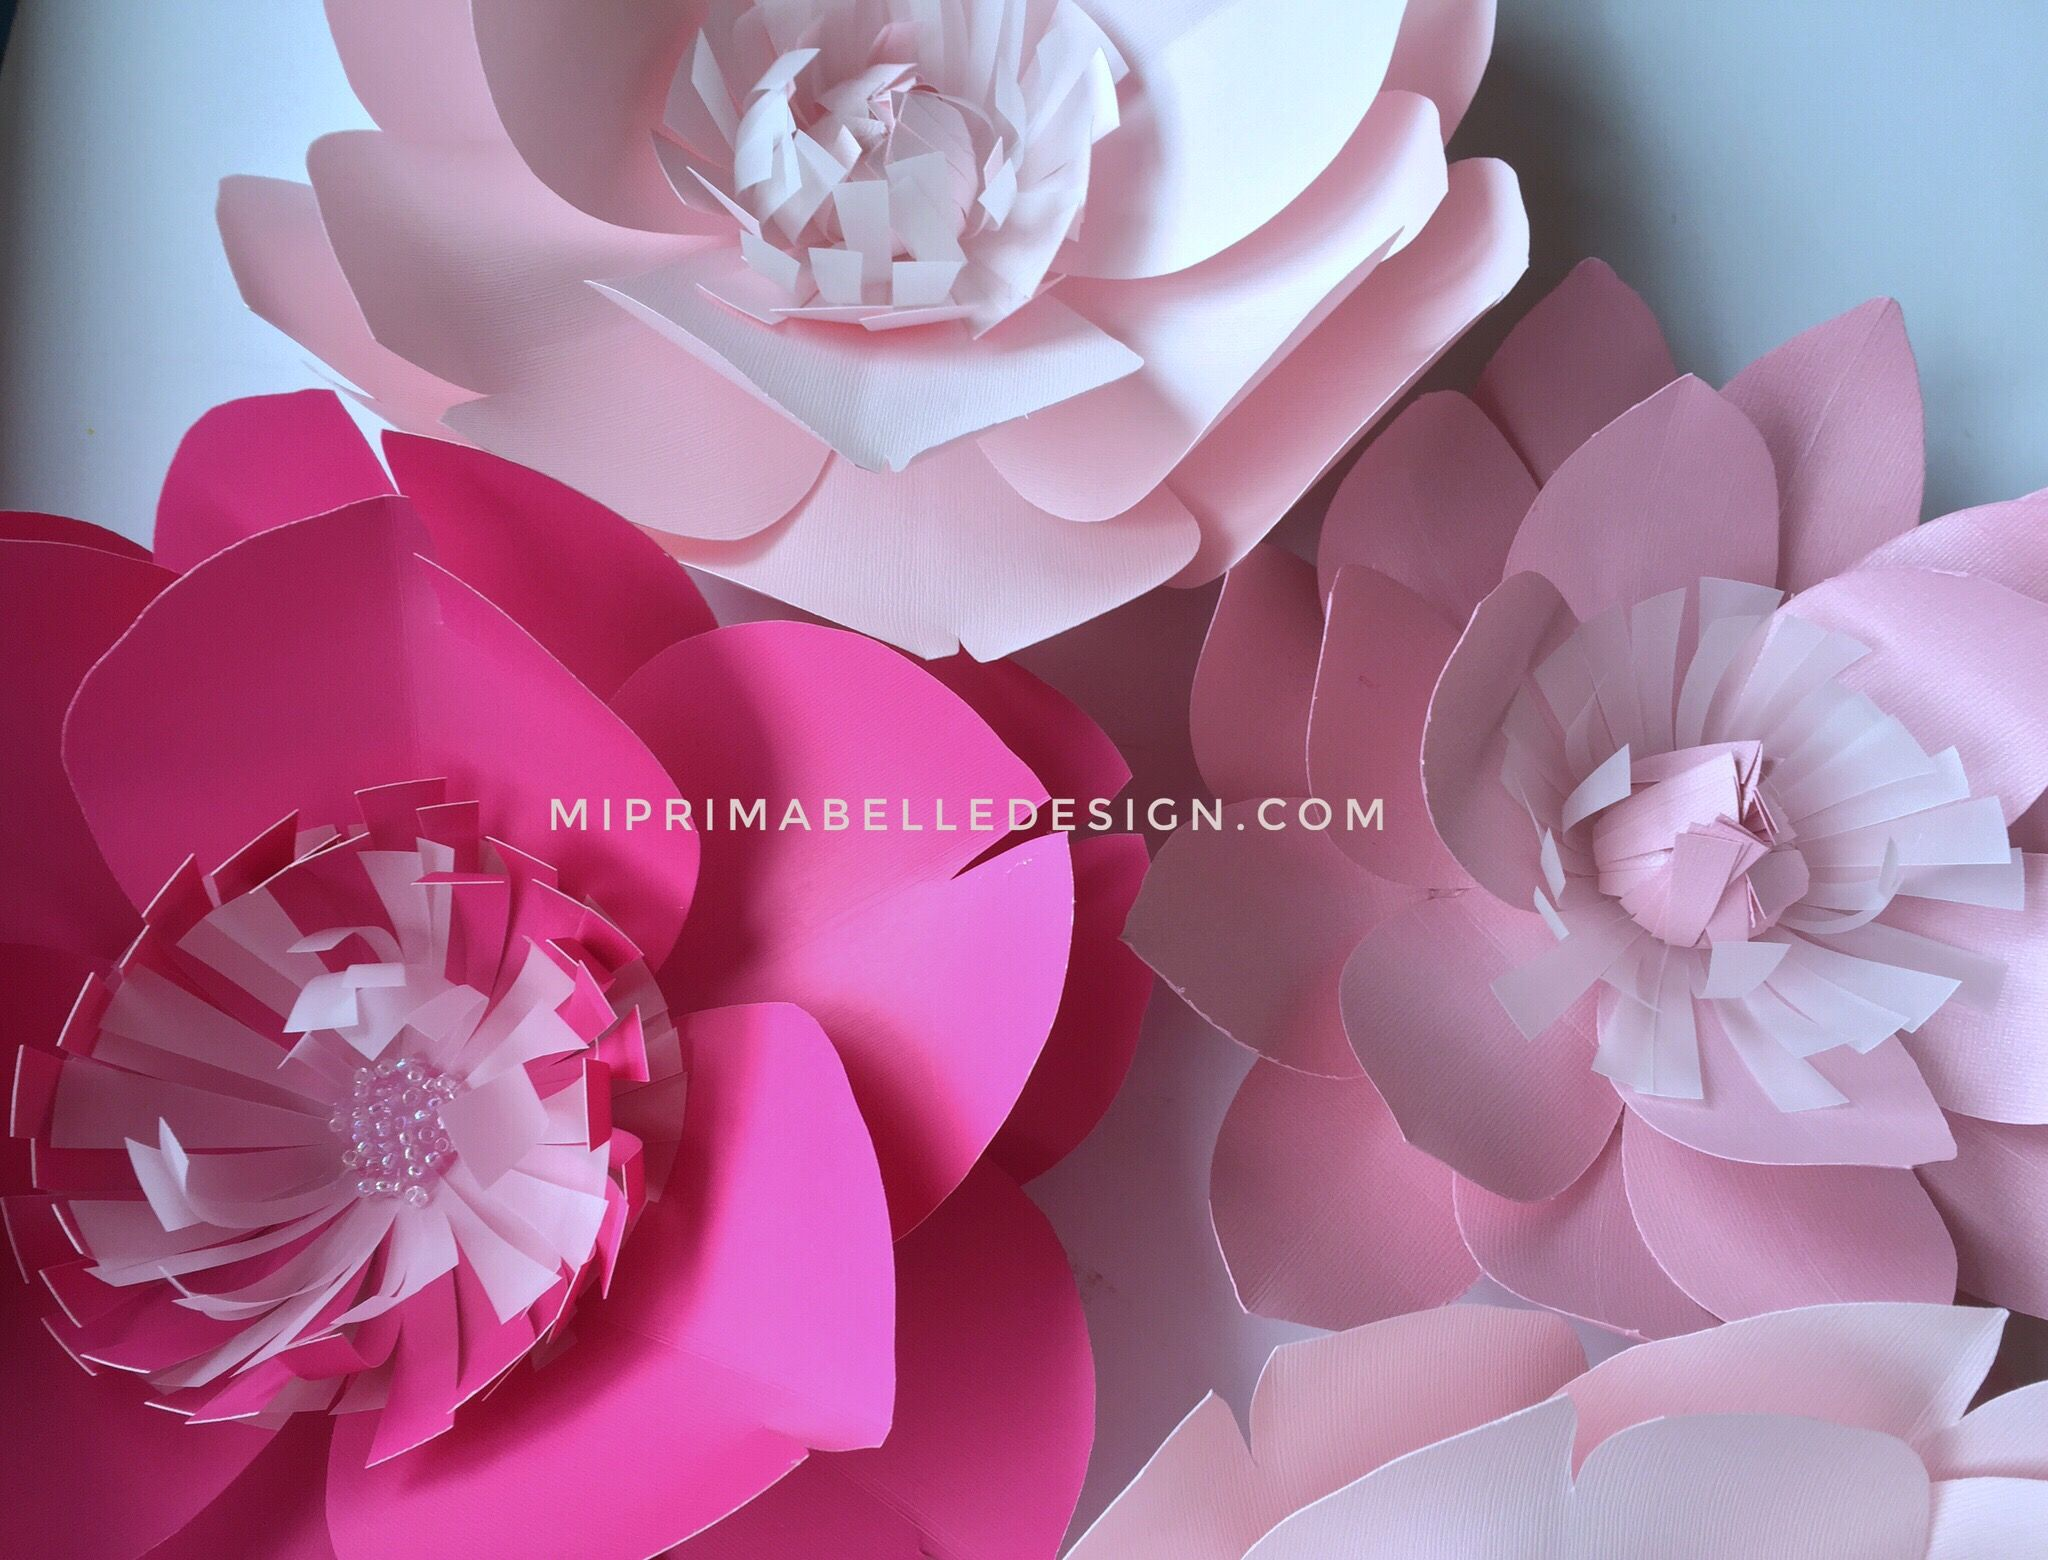 Find mi prima belle on etsy and facebook for more paper flowers for find mi prima belle on etsy and facebook for more paper flowers for home or wedding mightylinksfo